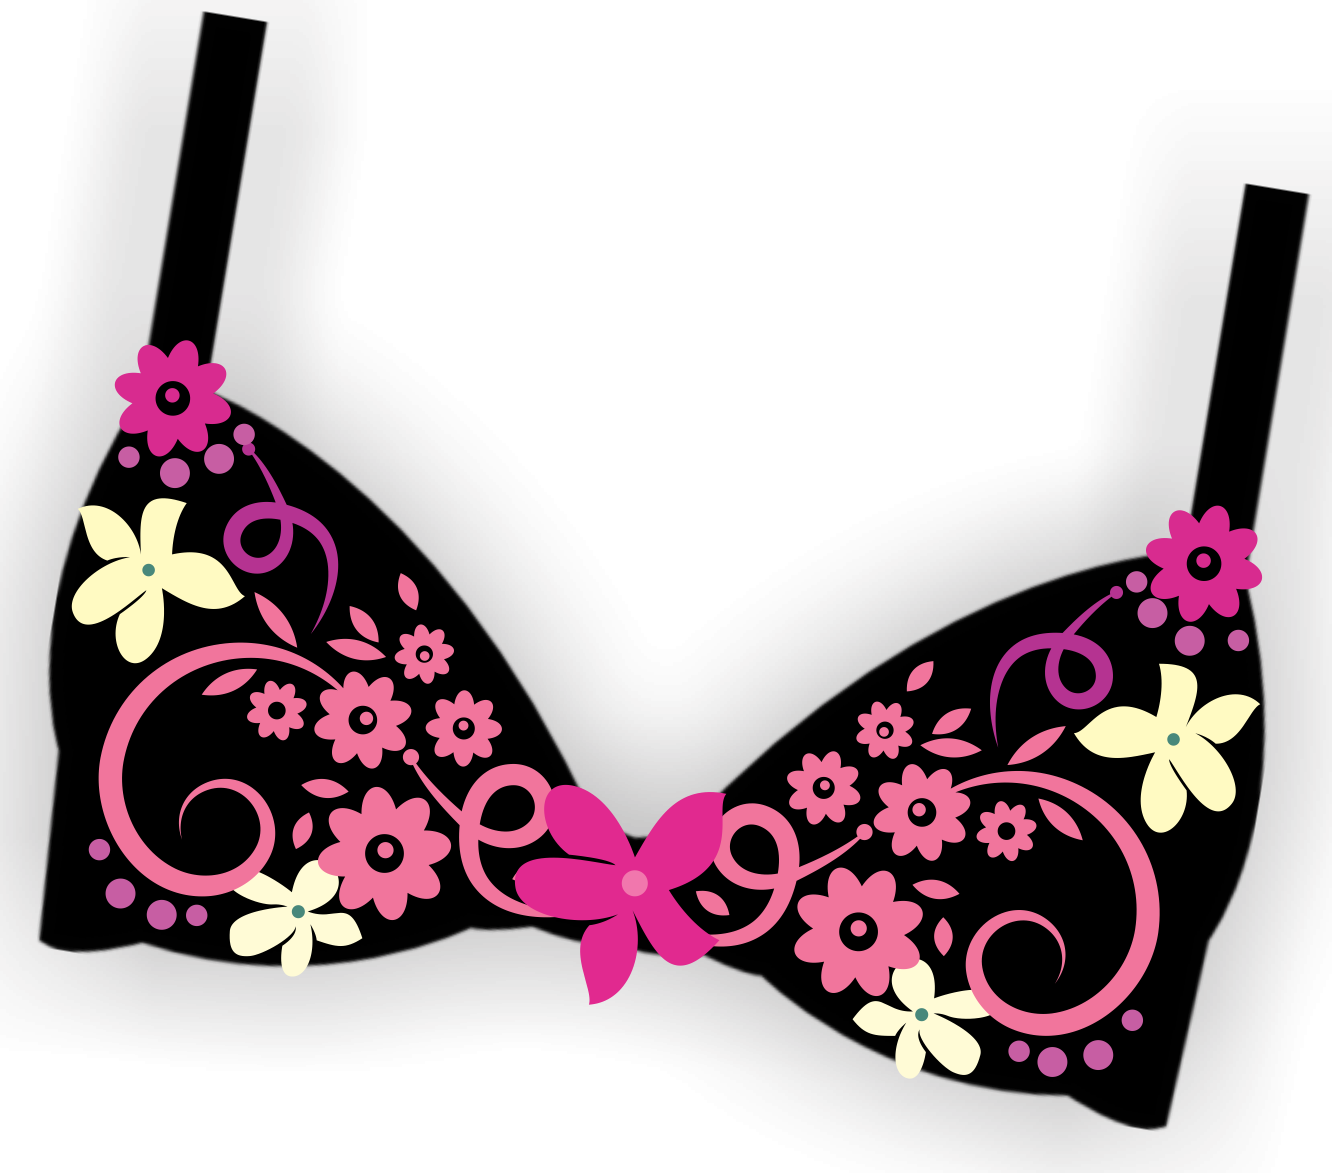 Lingerie vector illustration. Bling the bra clipart